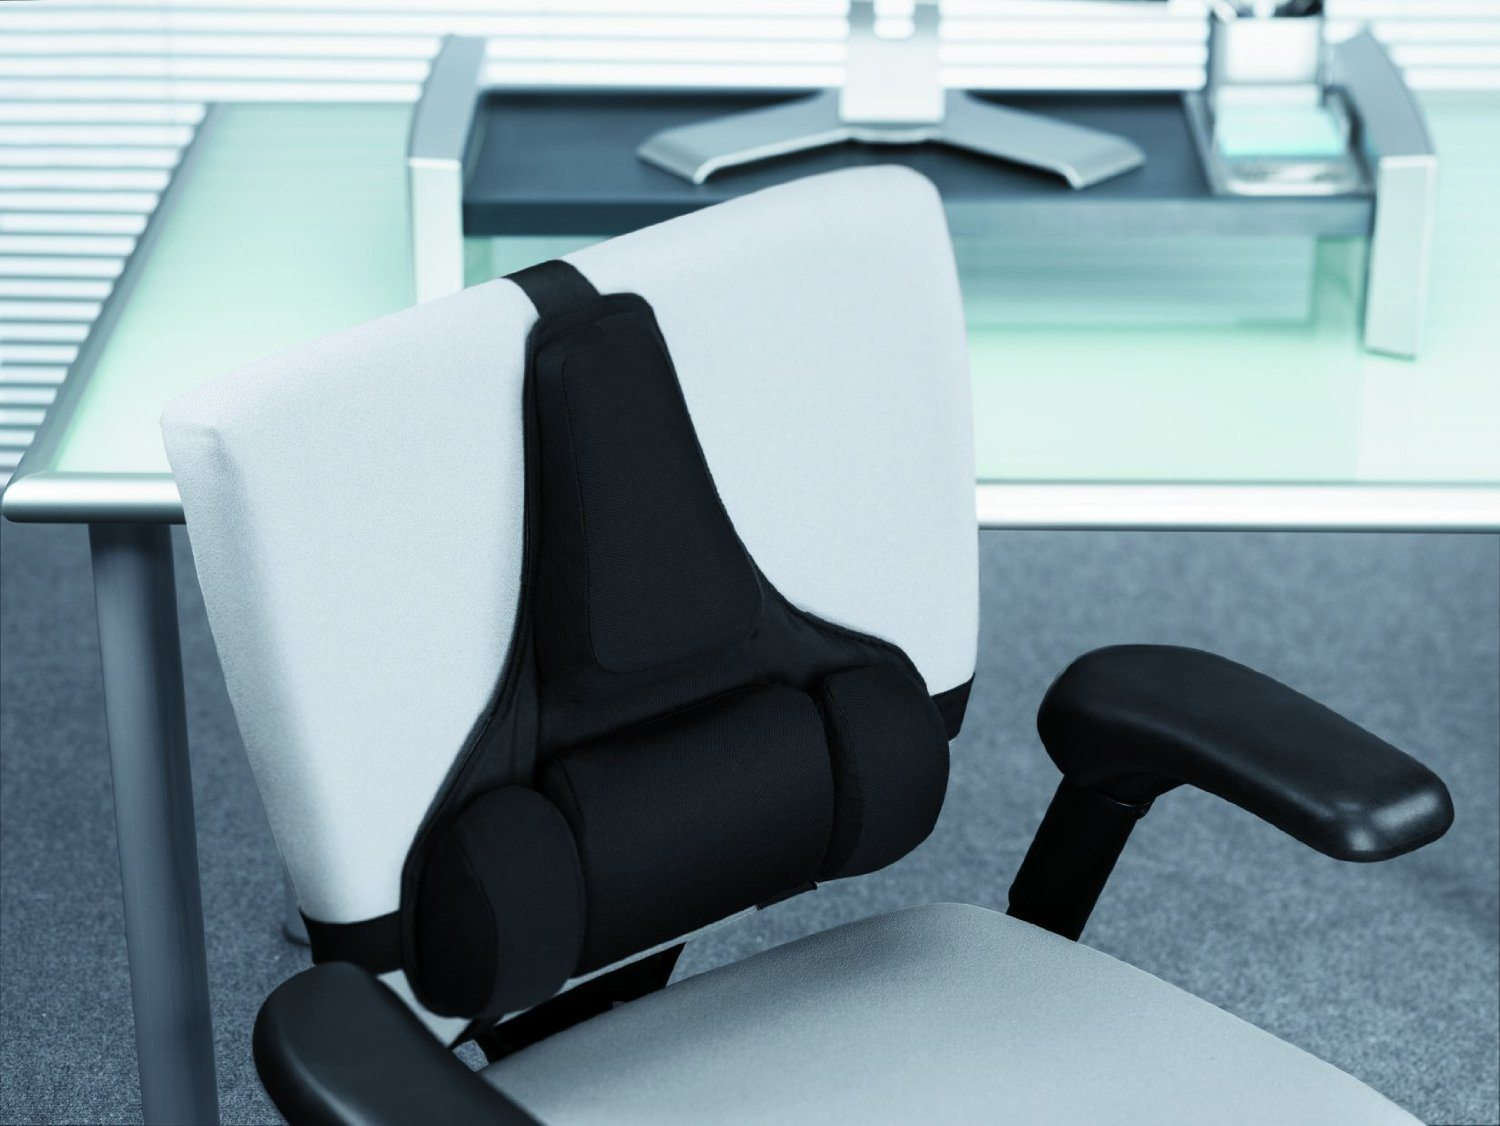 lumbar support for office chair design